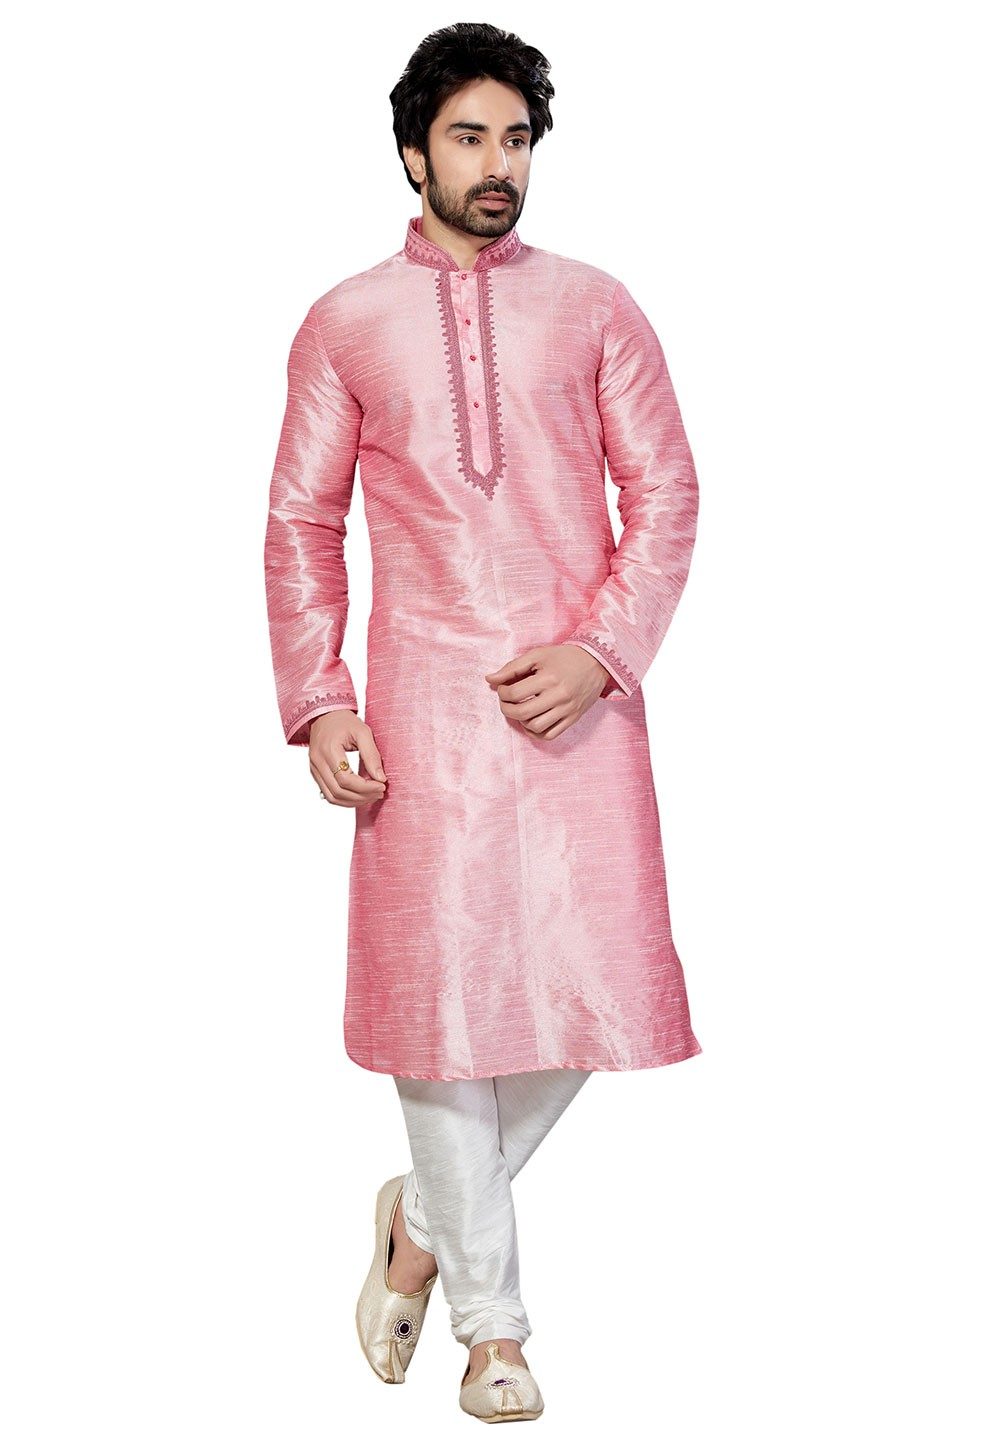 Exquisite Pink Color Dupion Silk Fabric Readymade Kurta Pyjama.